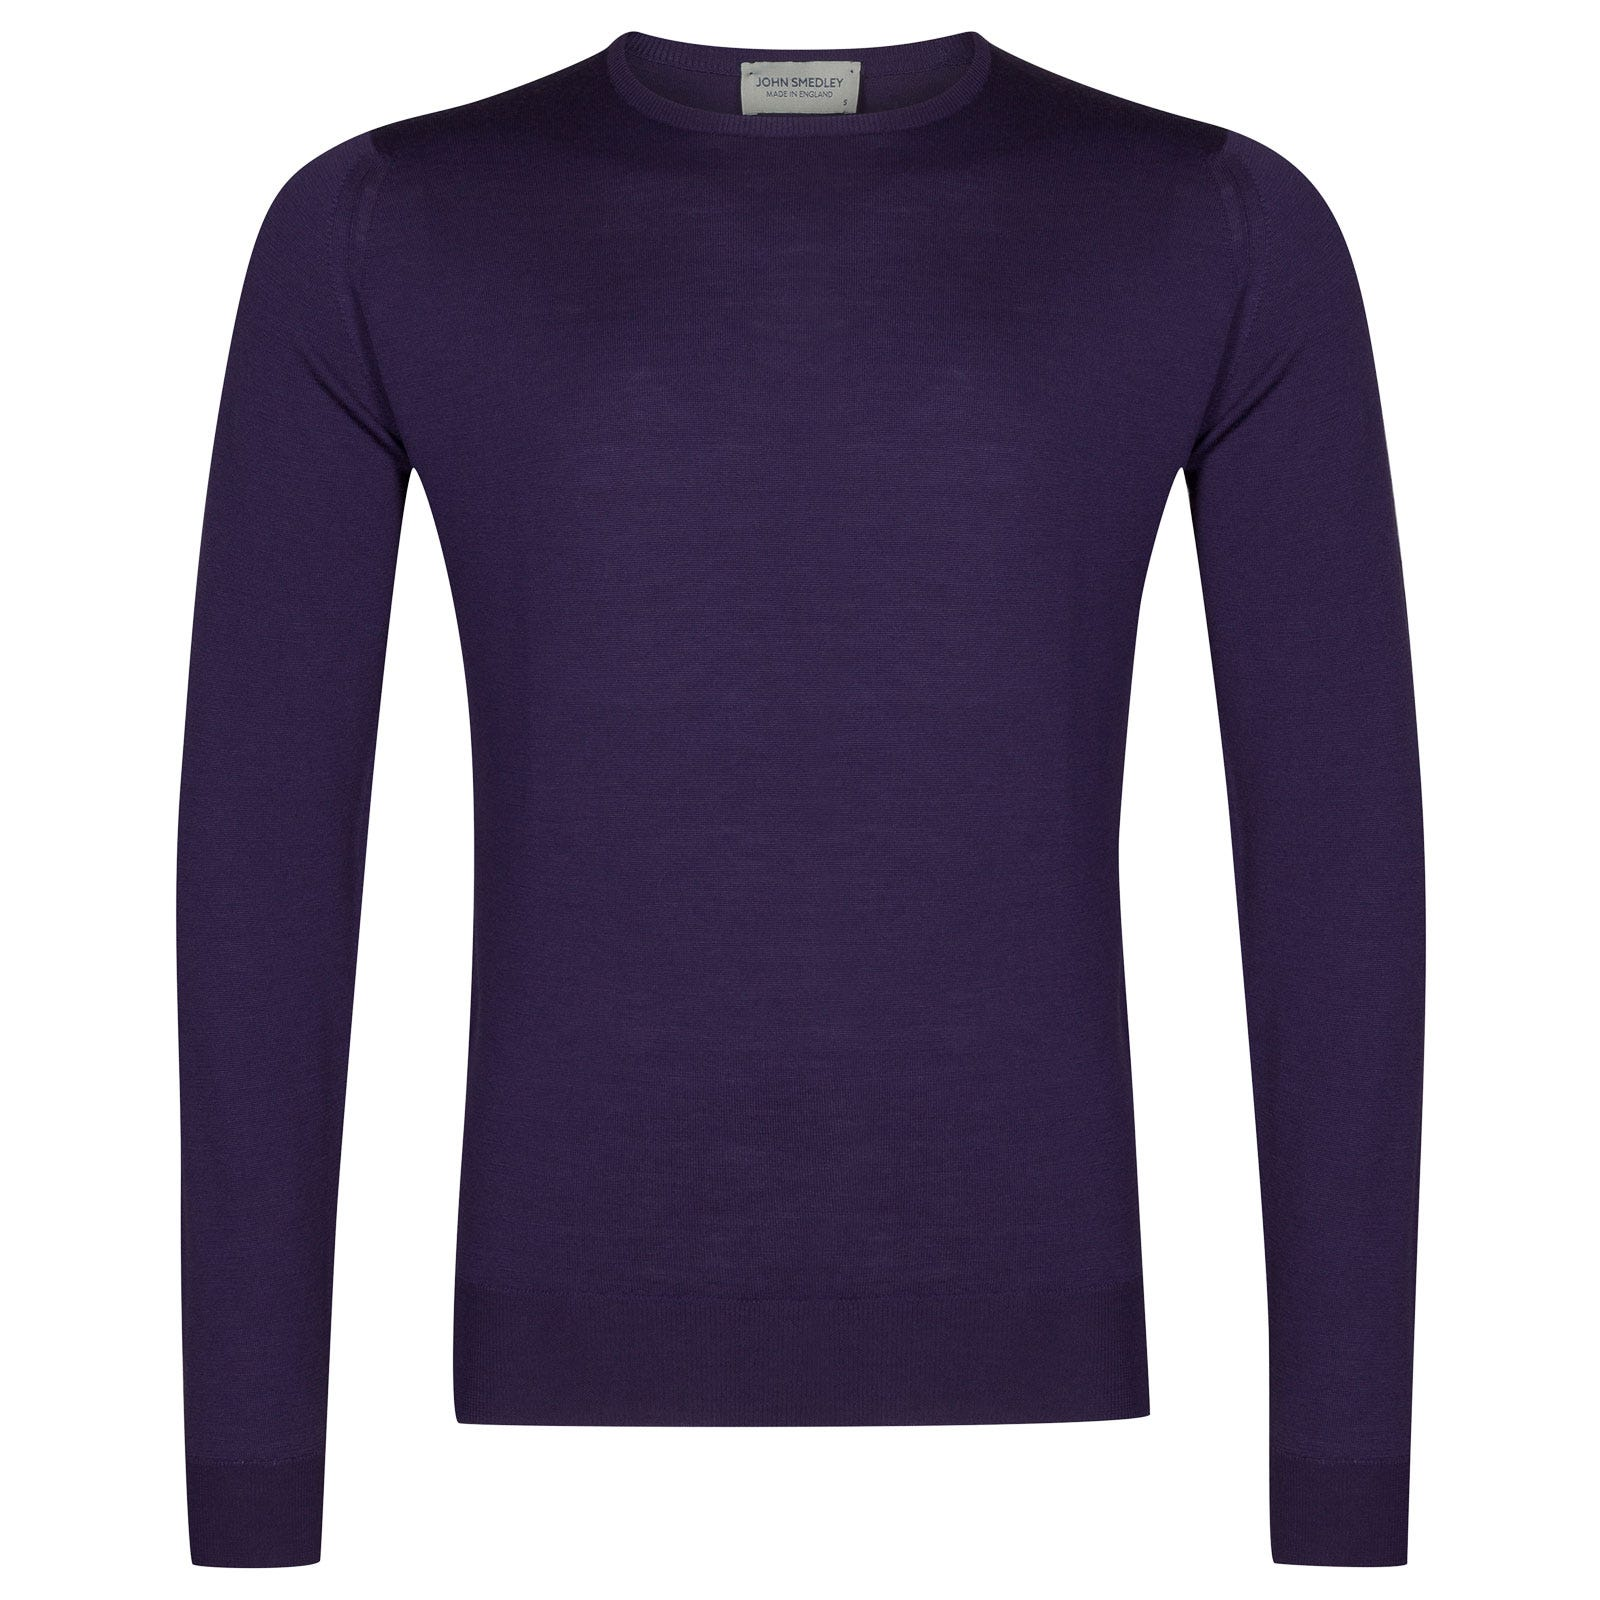 John Smedley lundy Merino Wool Pullover in Elderberry Purple-XXL